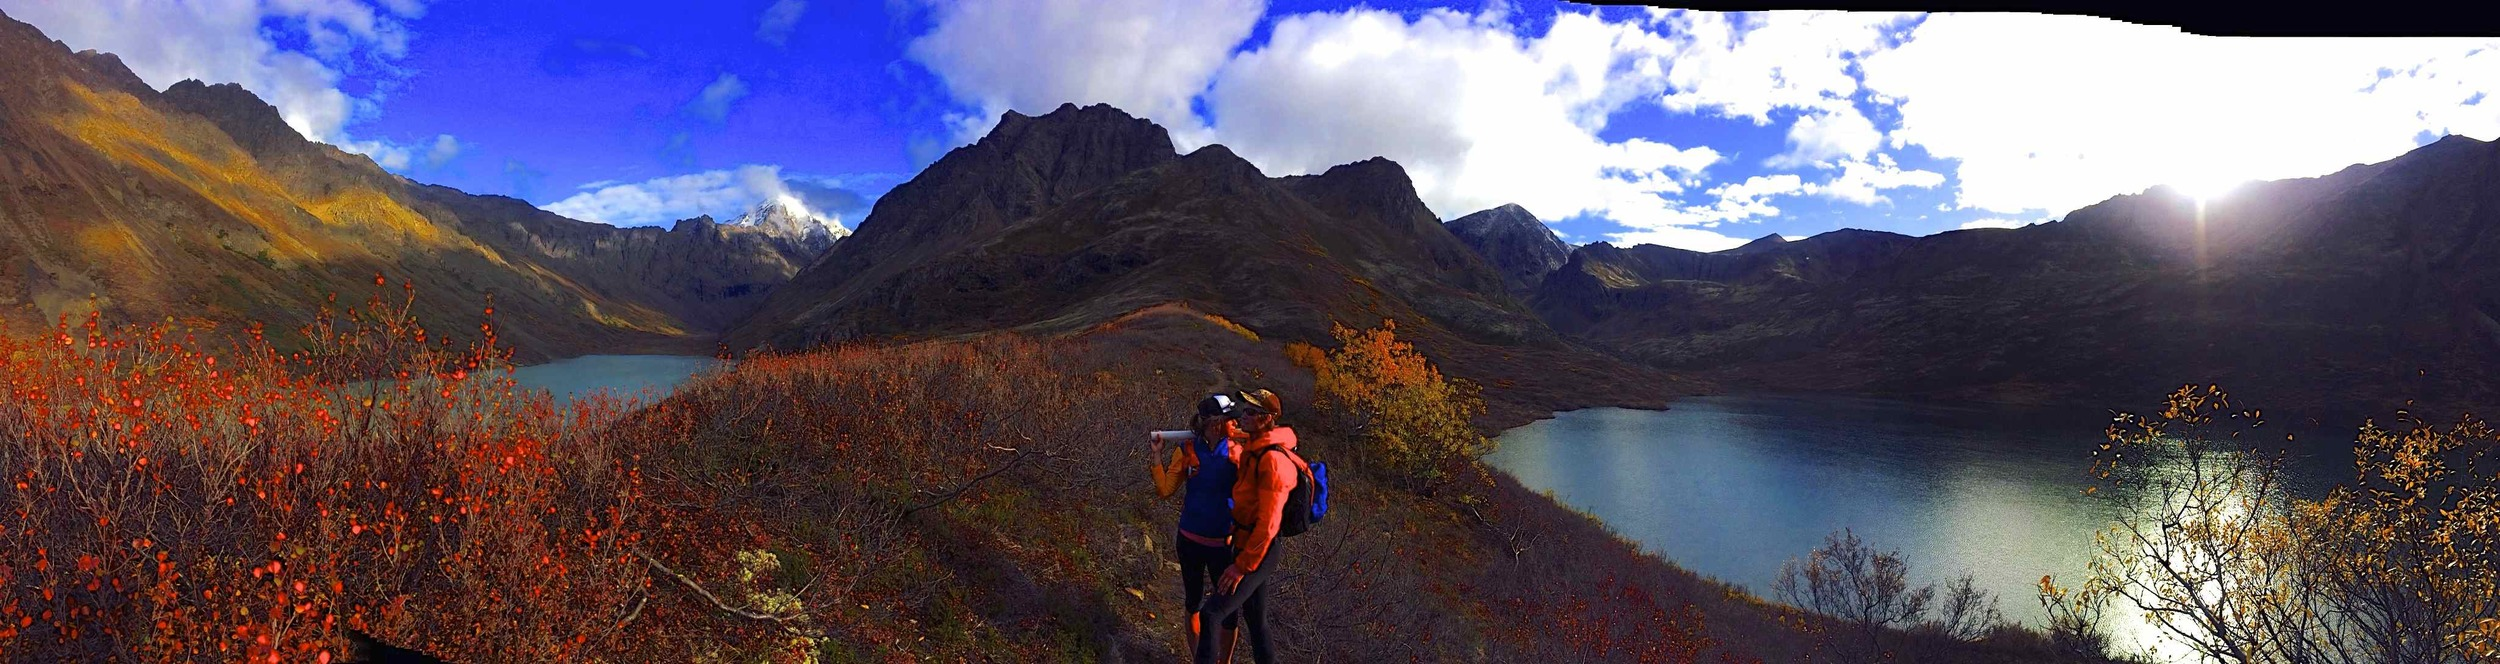 Ran to Symphony Lake with Jessica and Tyler to catch some grayling and pick blue berries